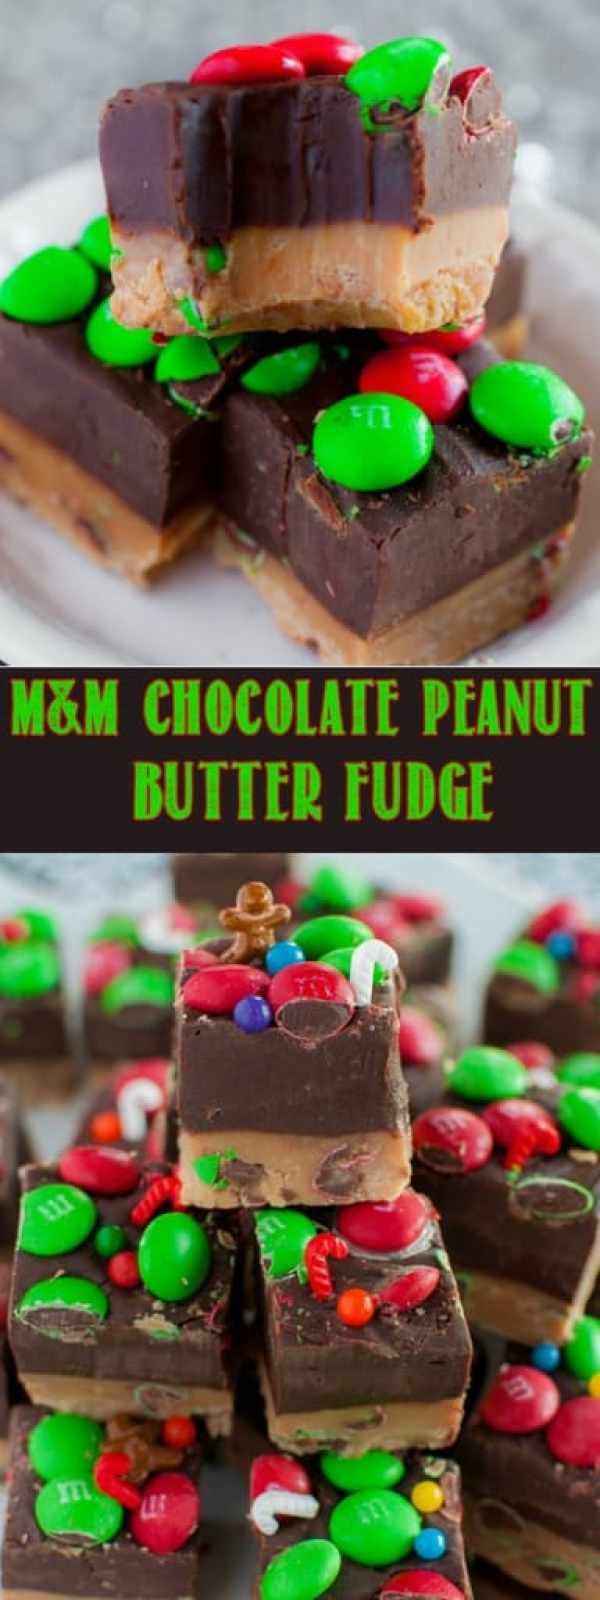 No Fail M&M Chocolate Peanut Butter Fudge comes together in minutes. It's a smooth, rich, double decker delight, perfect for Christmas parties and gifts! #christmas #candy #fudge